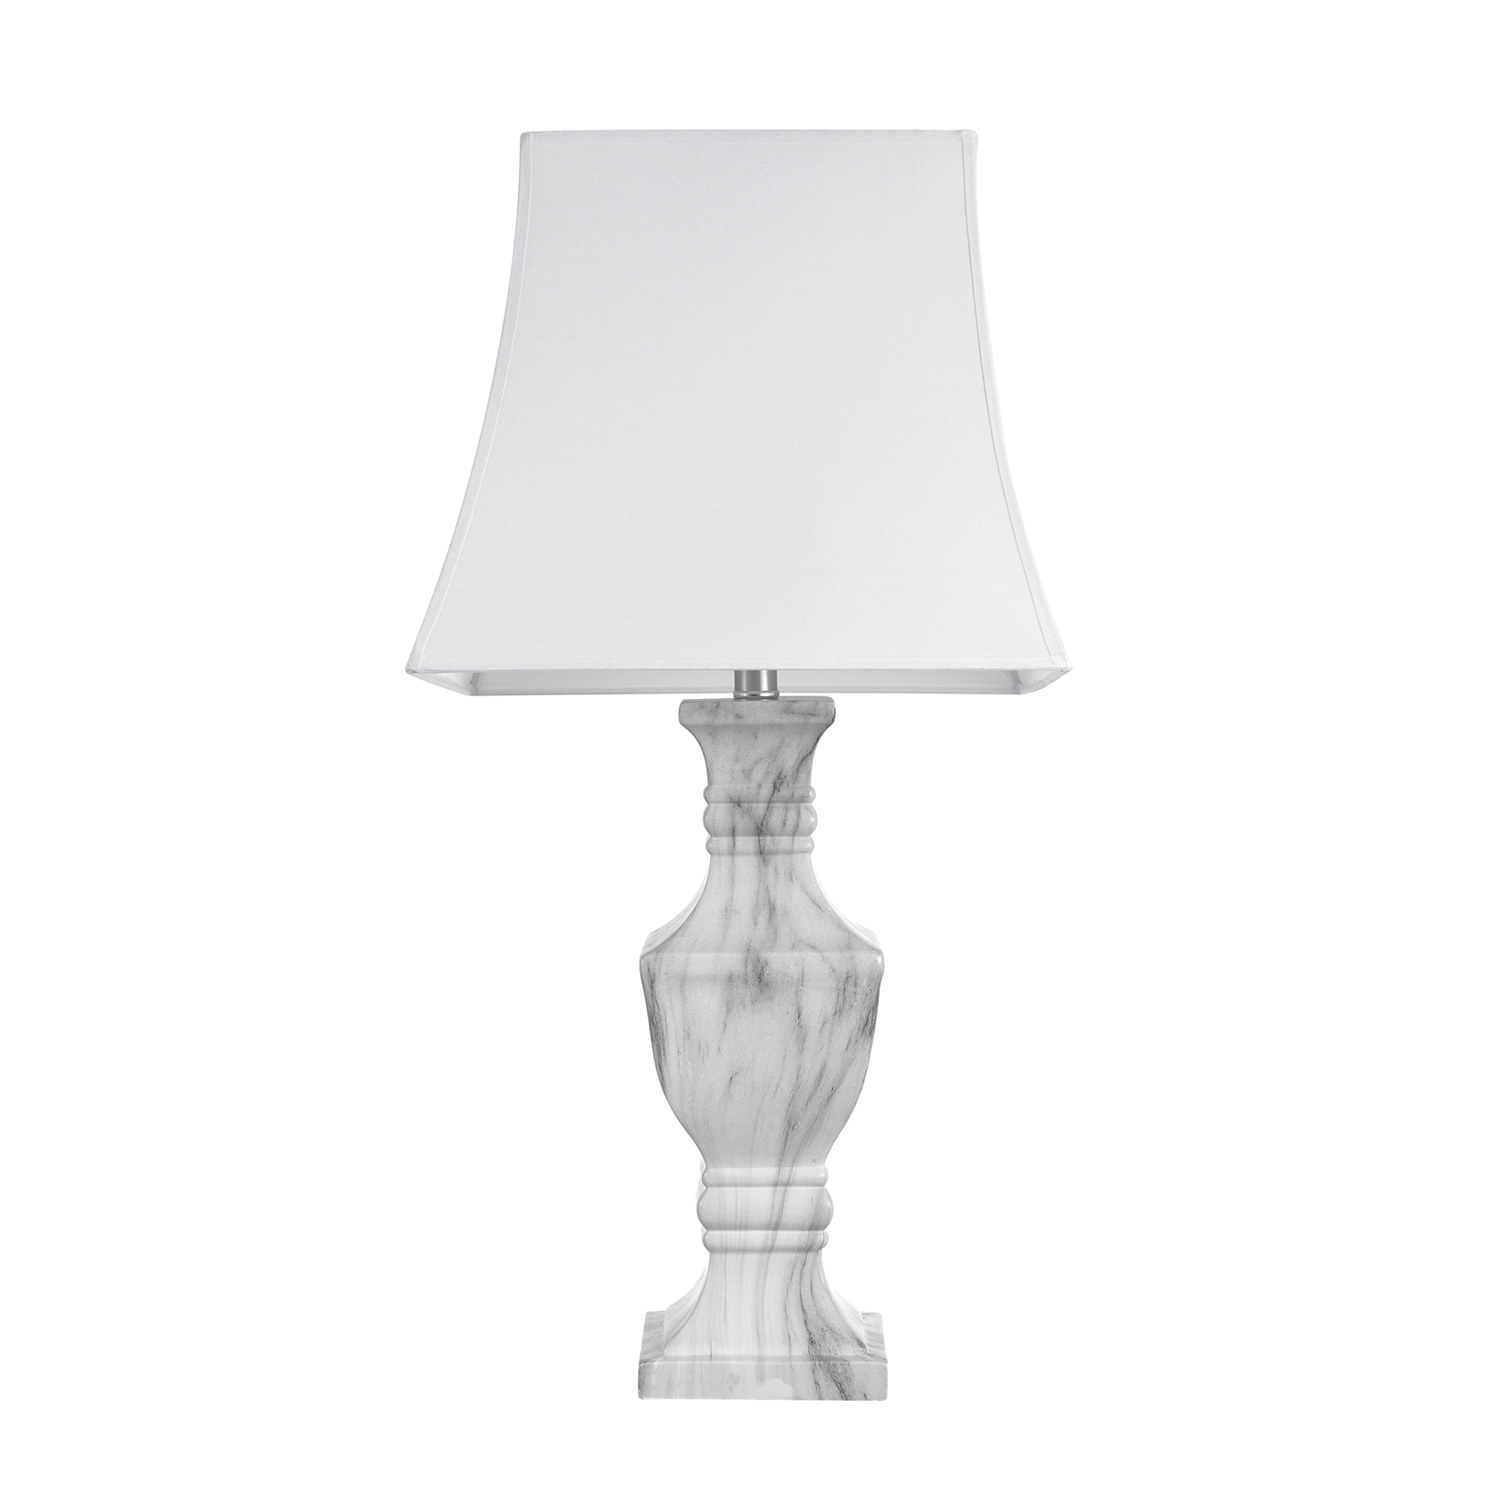 The white lamp and shade